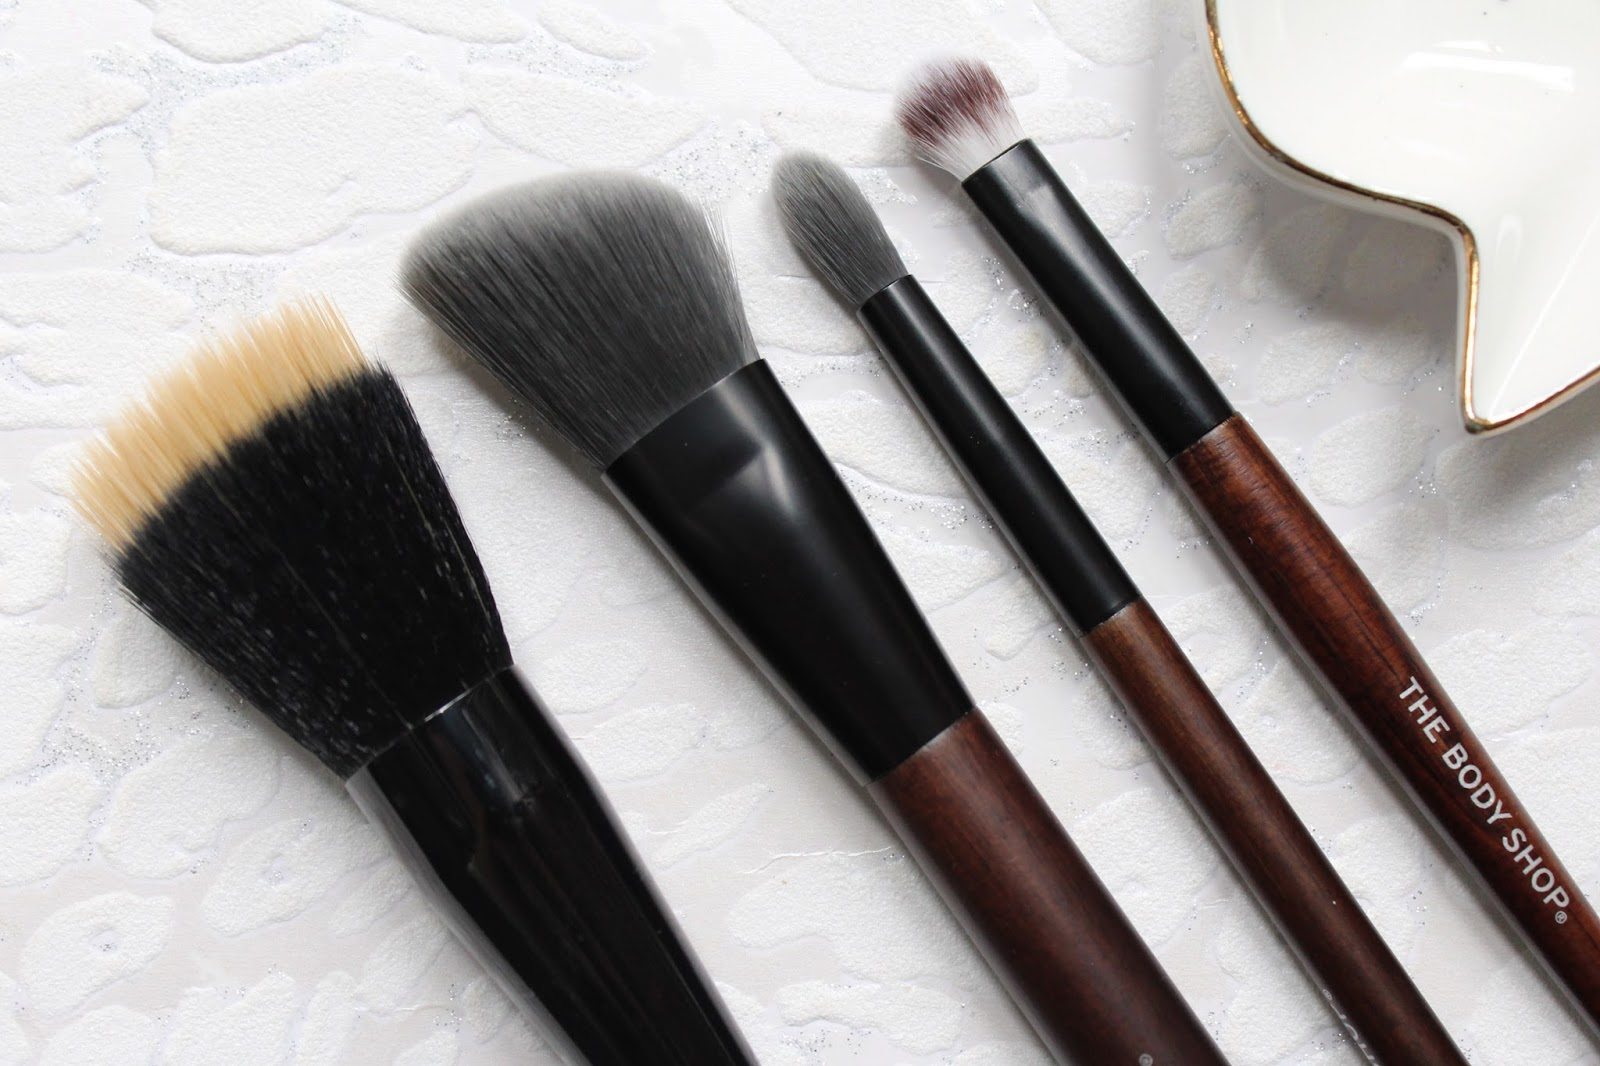 The Body Shop Makeup Brushes